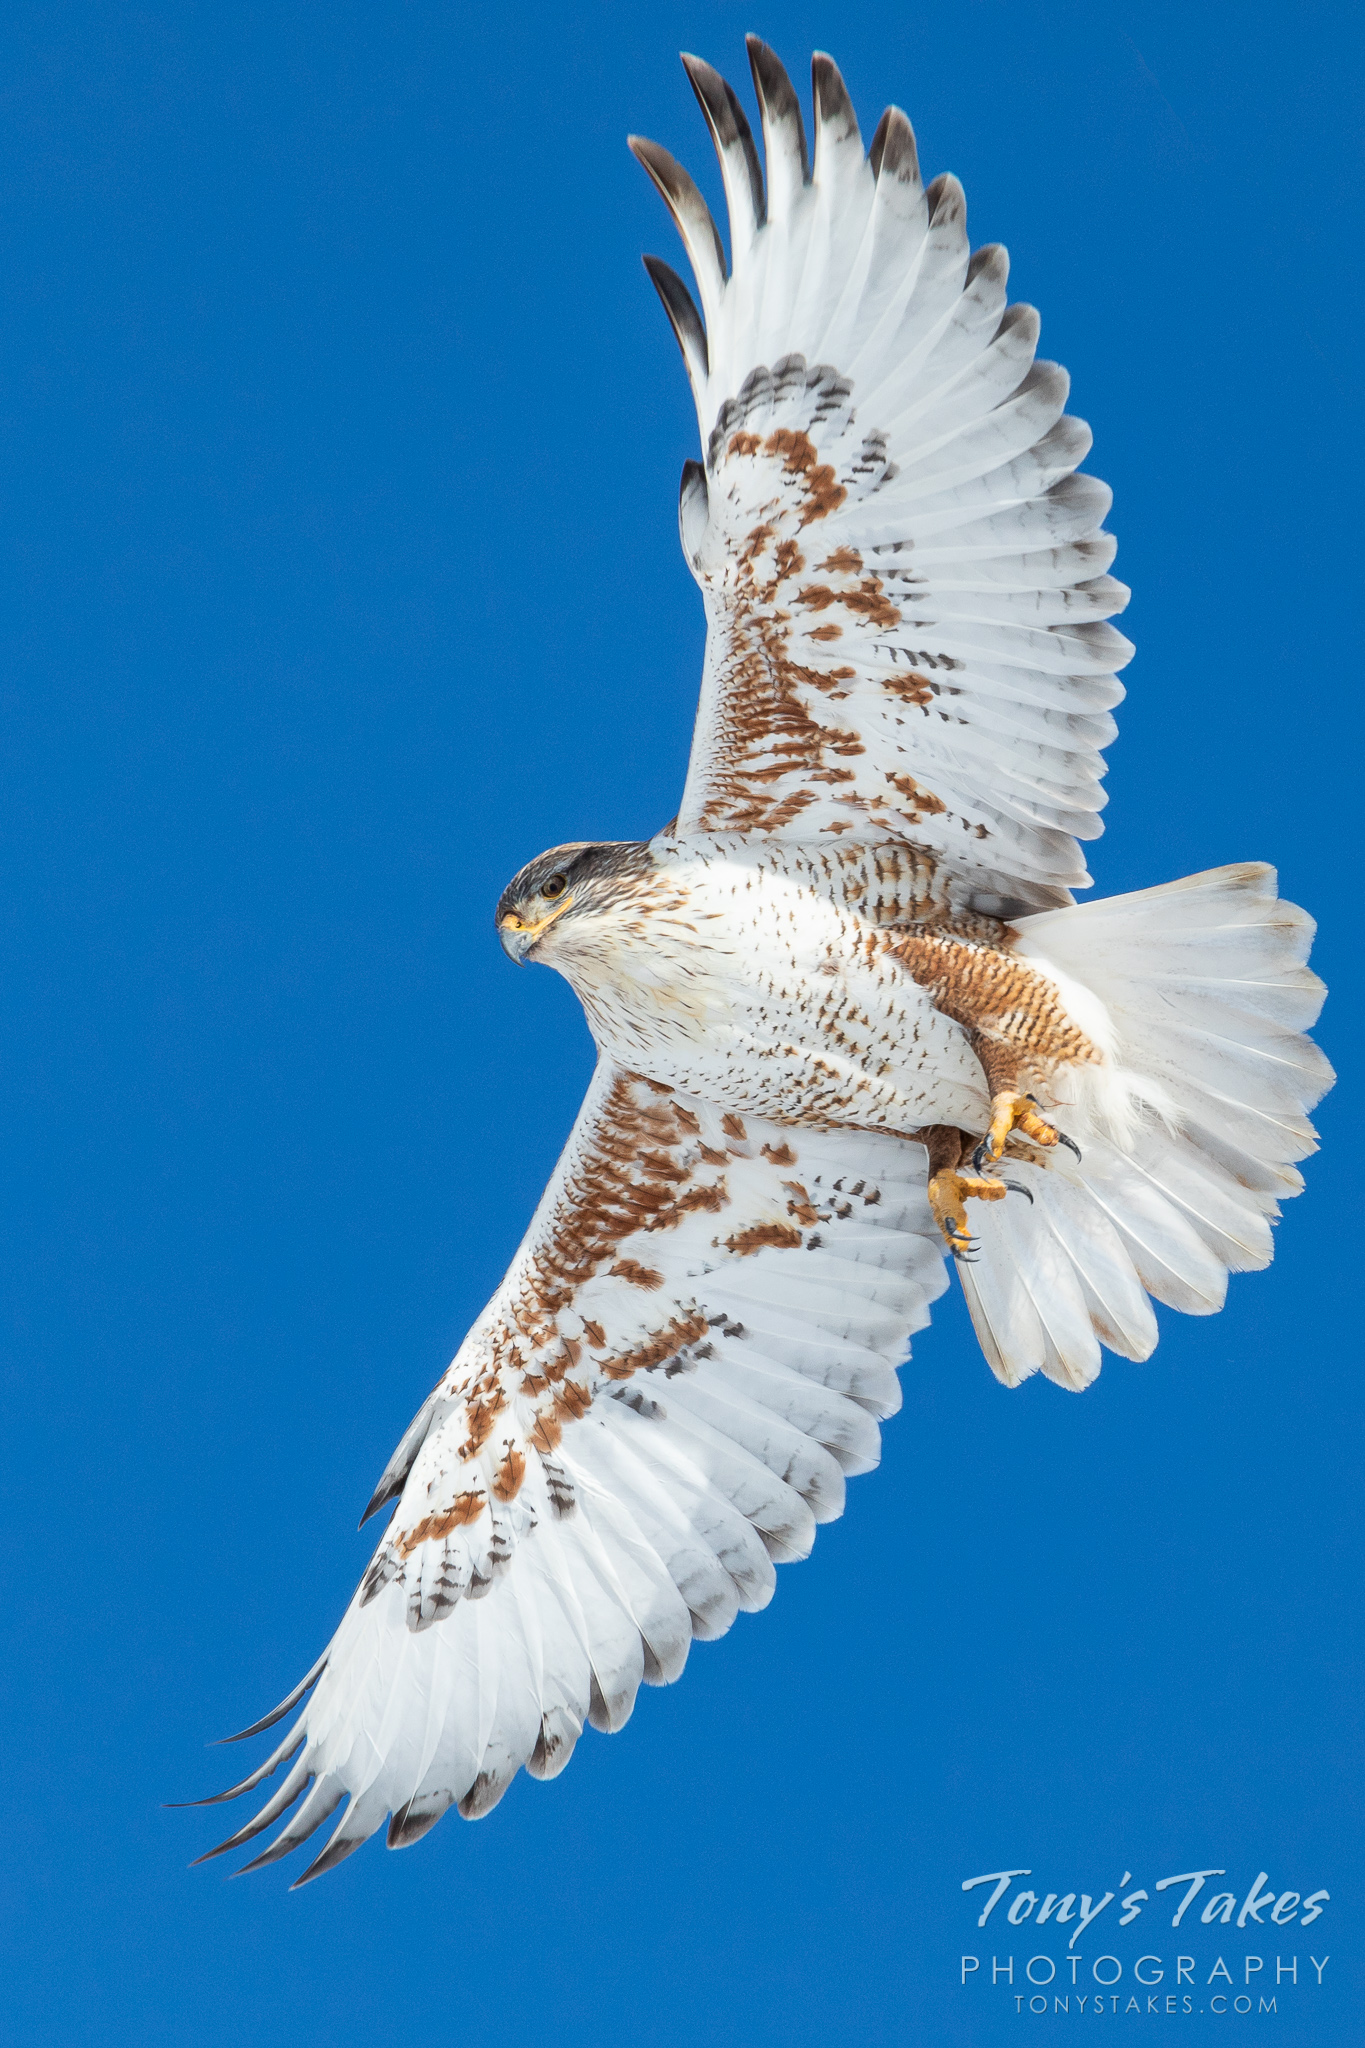 Ferruginous hawk showcases its beautiful plumage